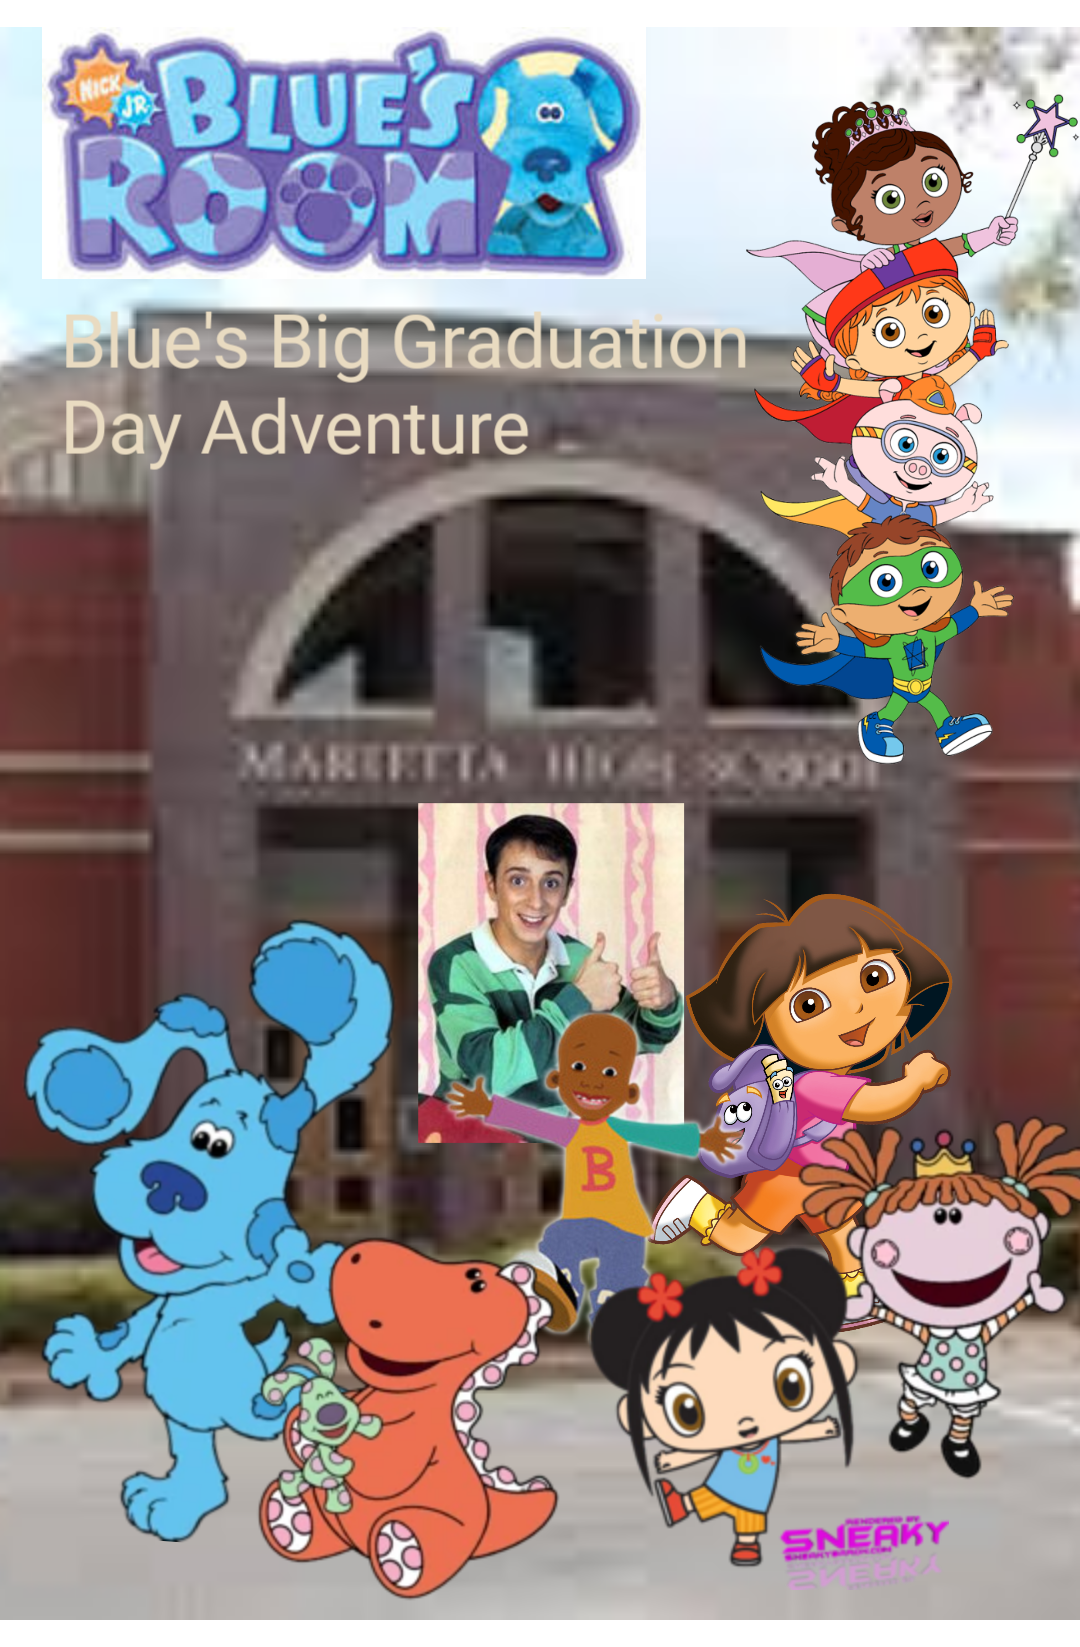 Blue's Room: Blue's Big Graduation Day Adventure